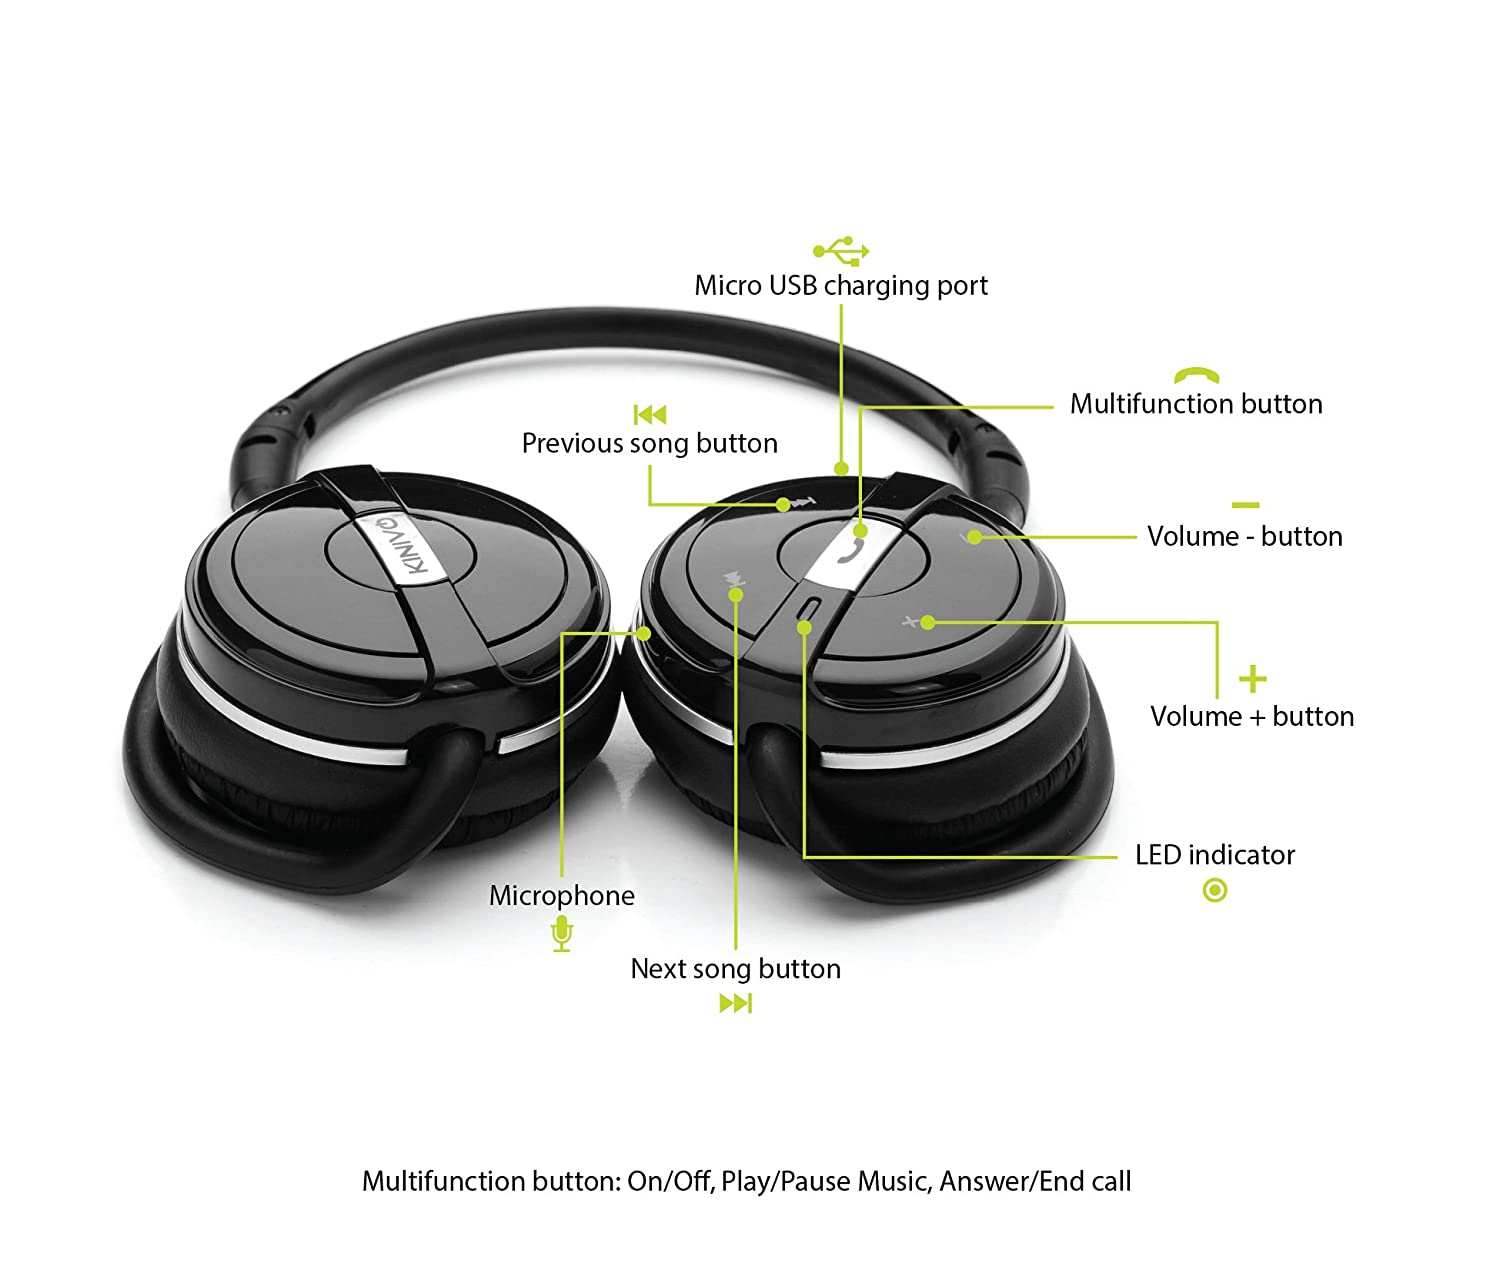 Kinivo Bth240 Bluetooth Stereo Headphone Supports Wireless Music Lithium Ion 8211 Polymer Usb Battery Charger By Max1811 Streaming And Hands Free Calling Electronics